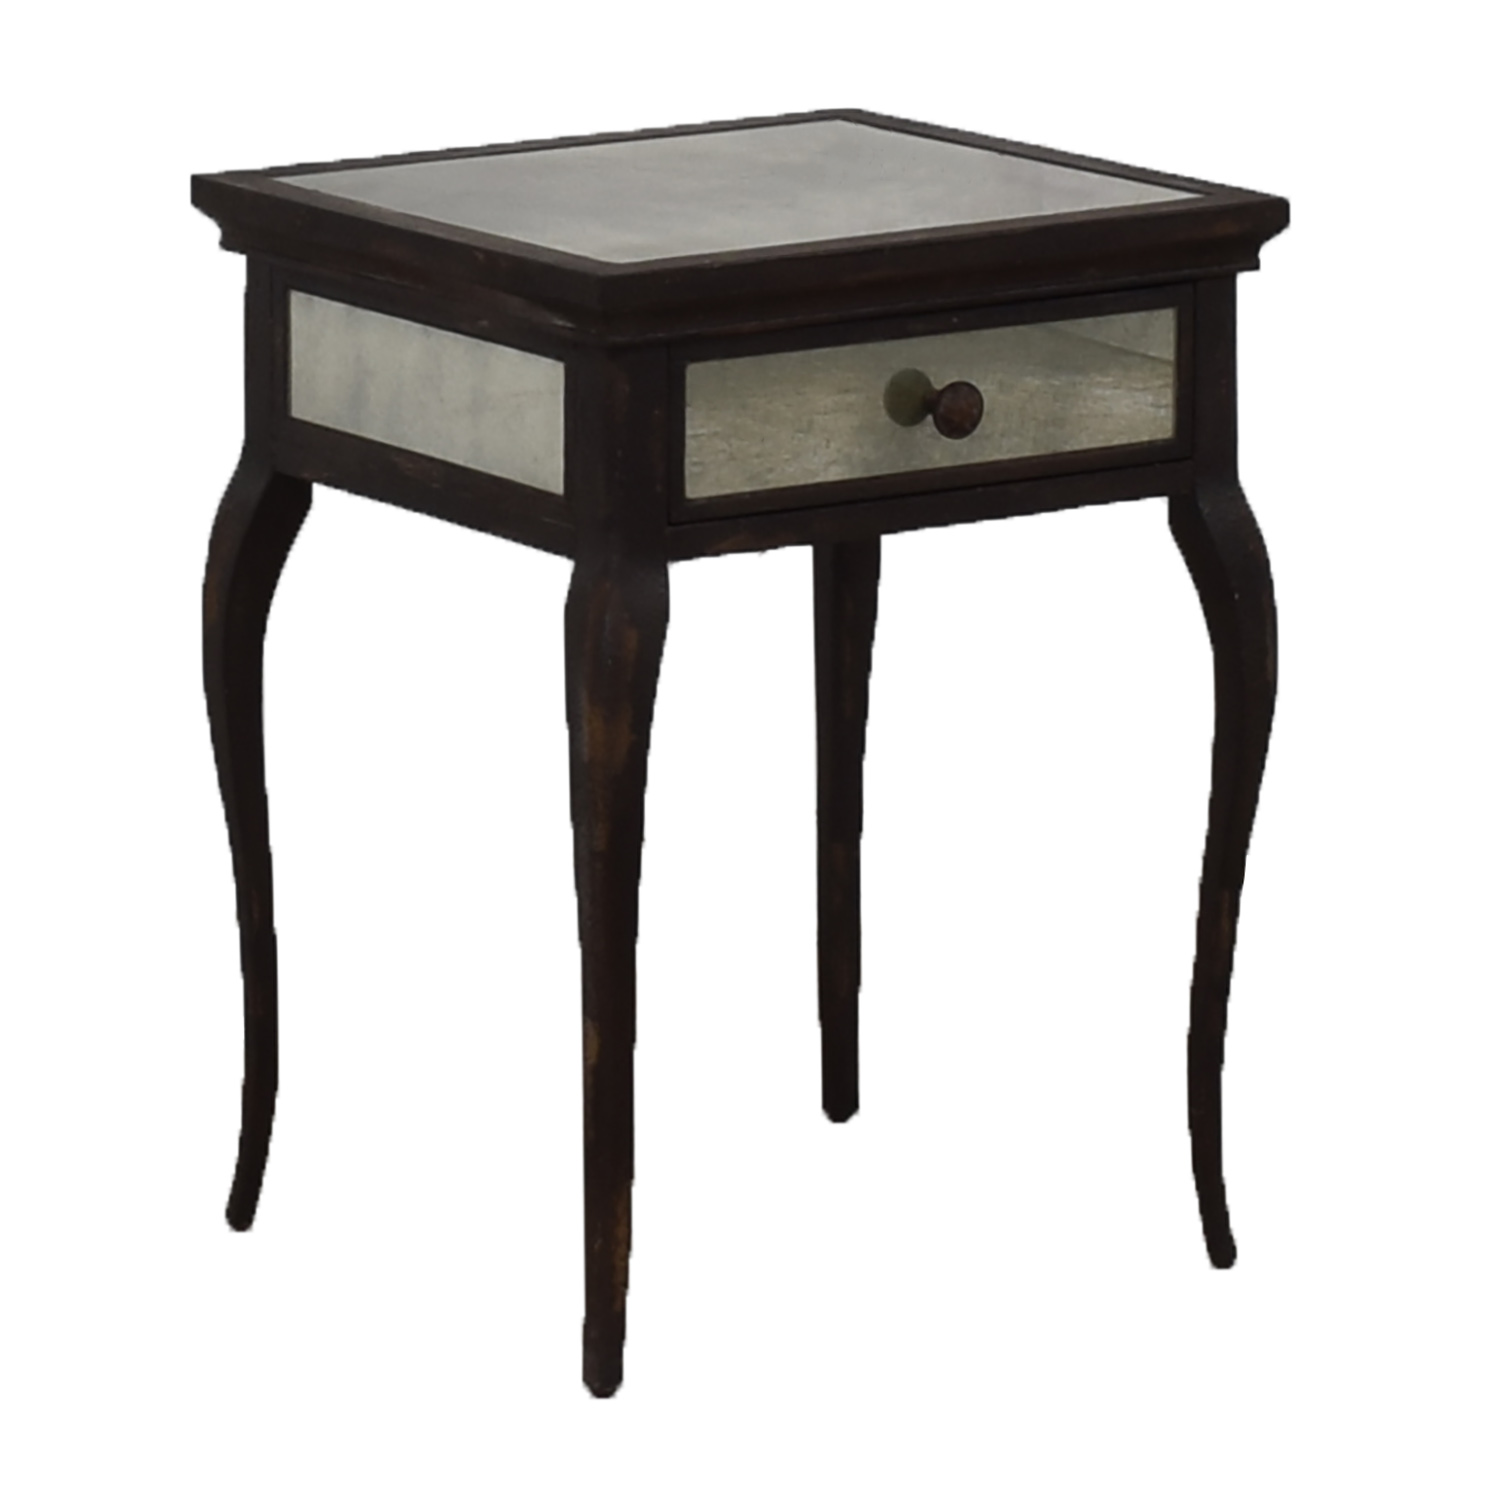 Uttermost Smoked Mirror and Metal End Table with One Drawer / Tables